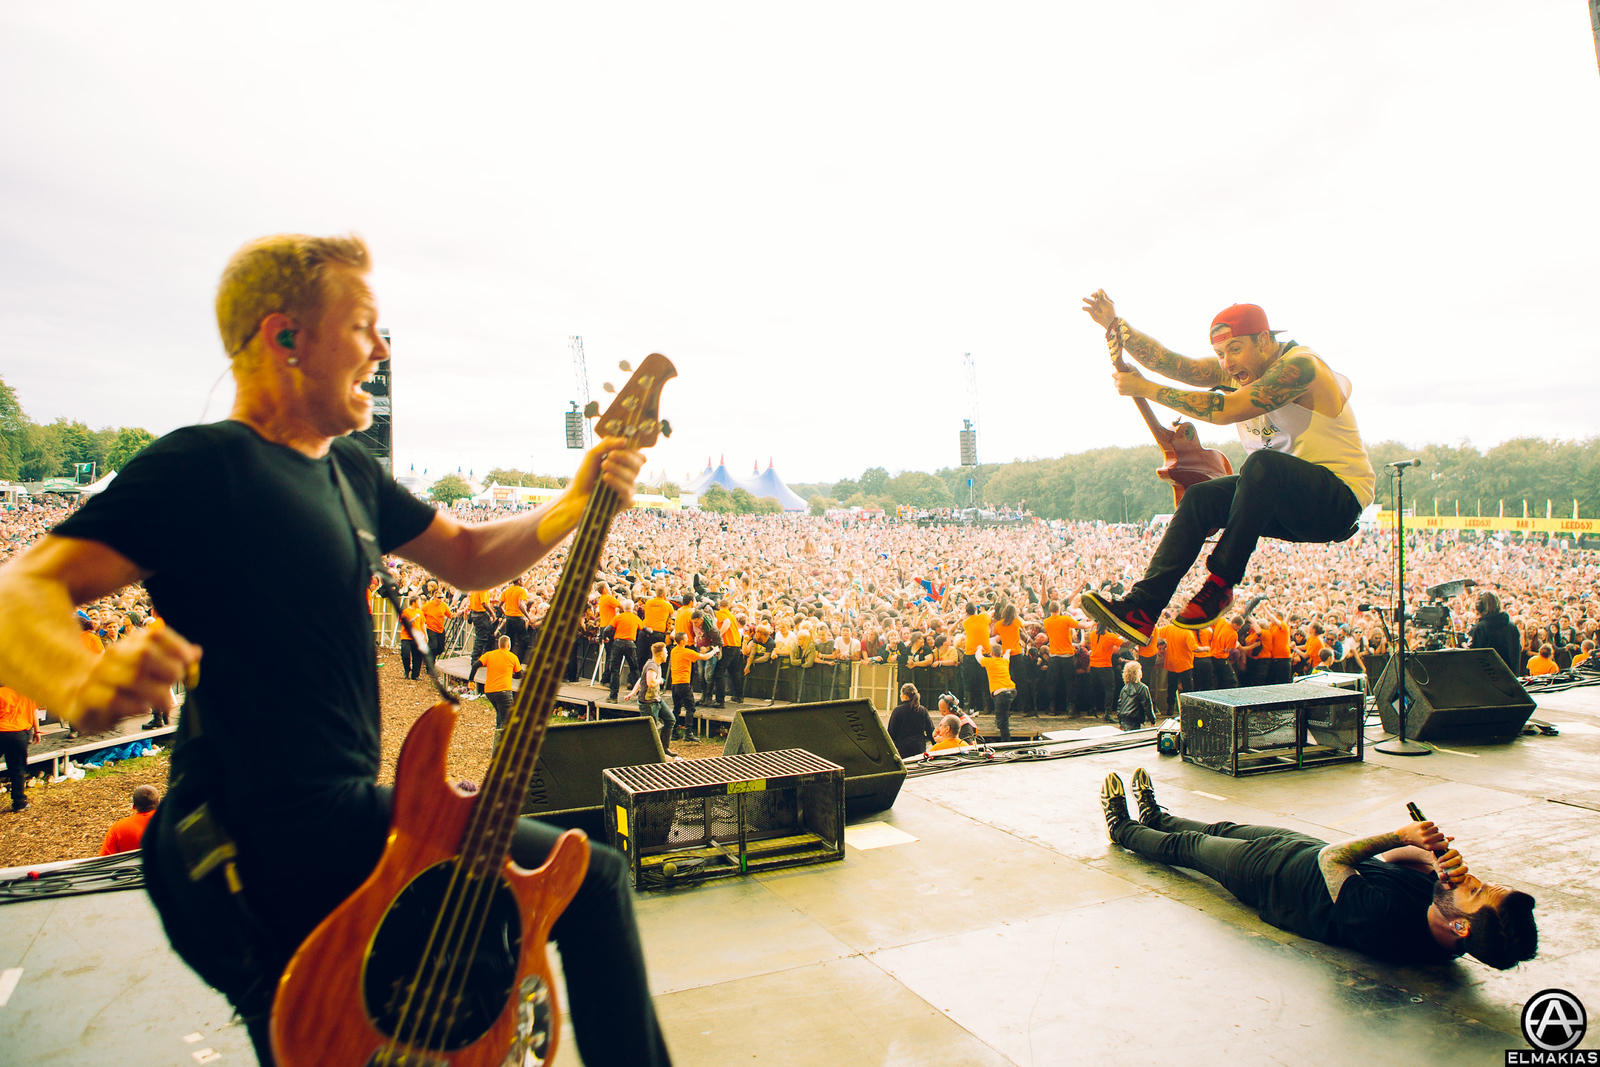 A Day To Remember at Leeds Festival